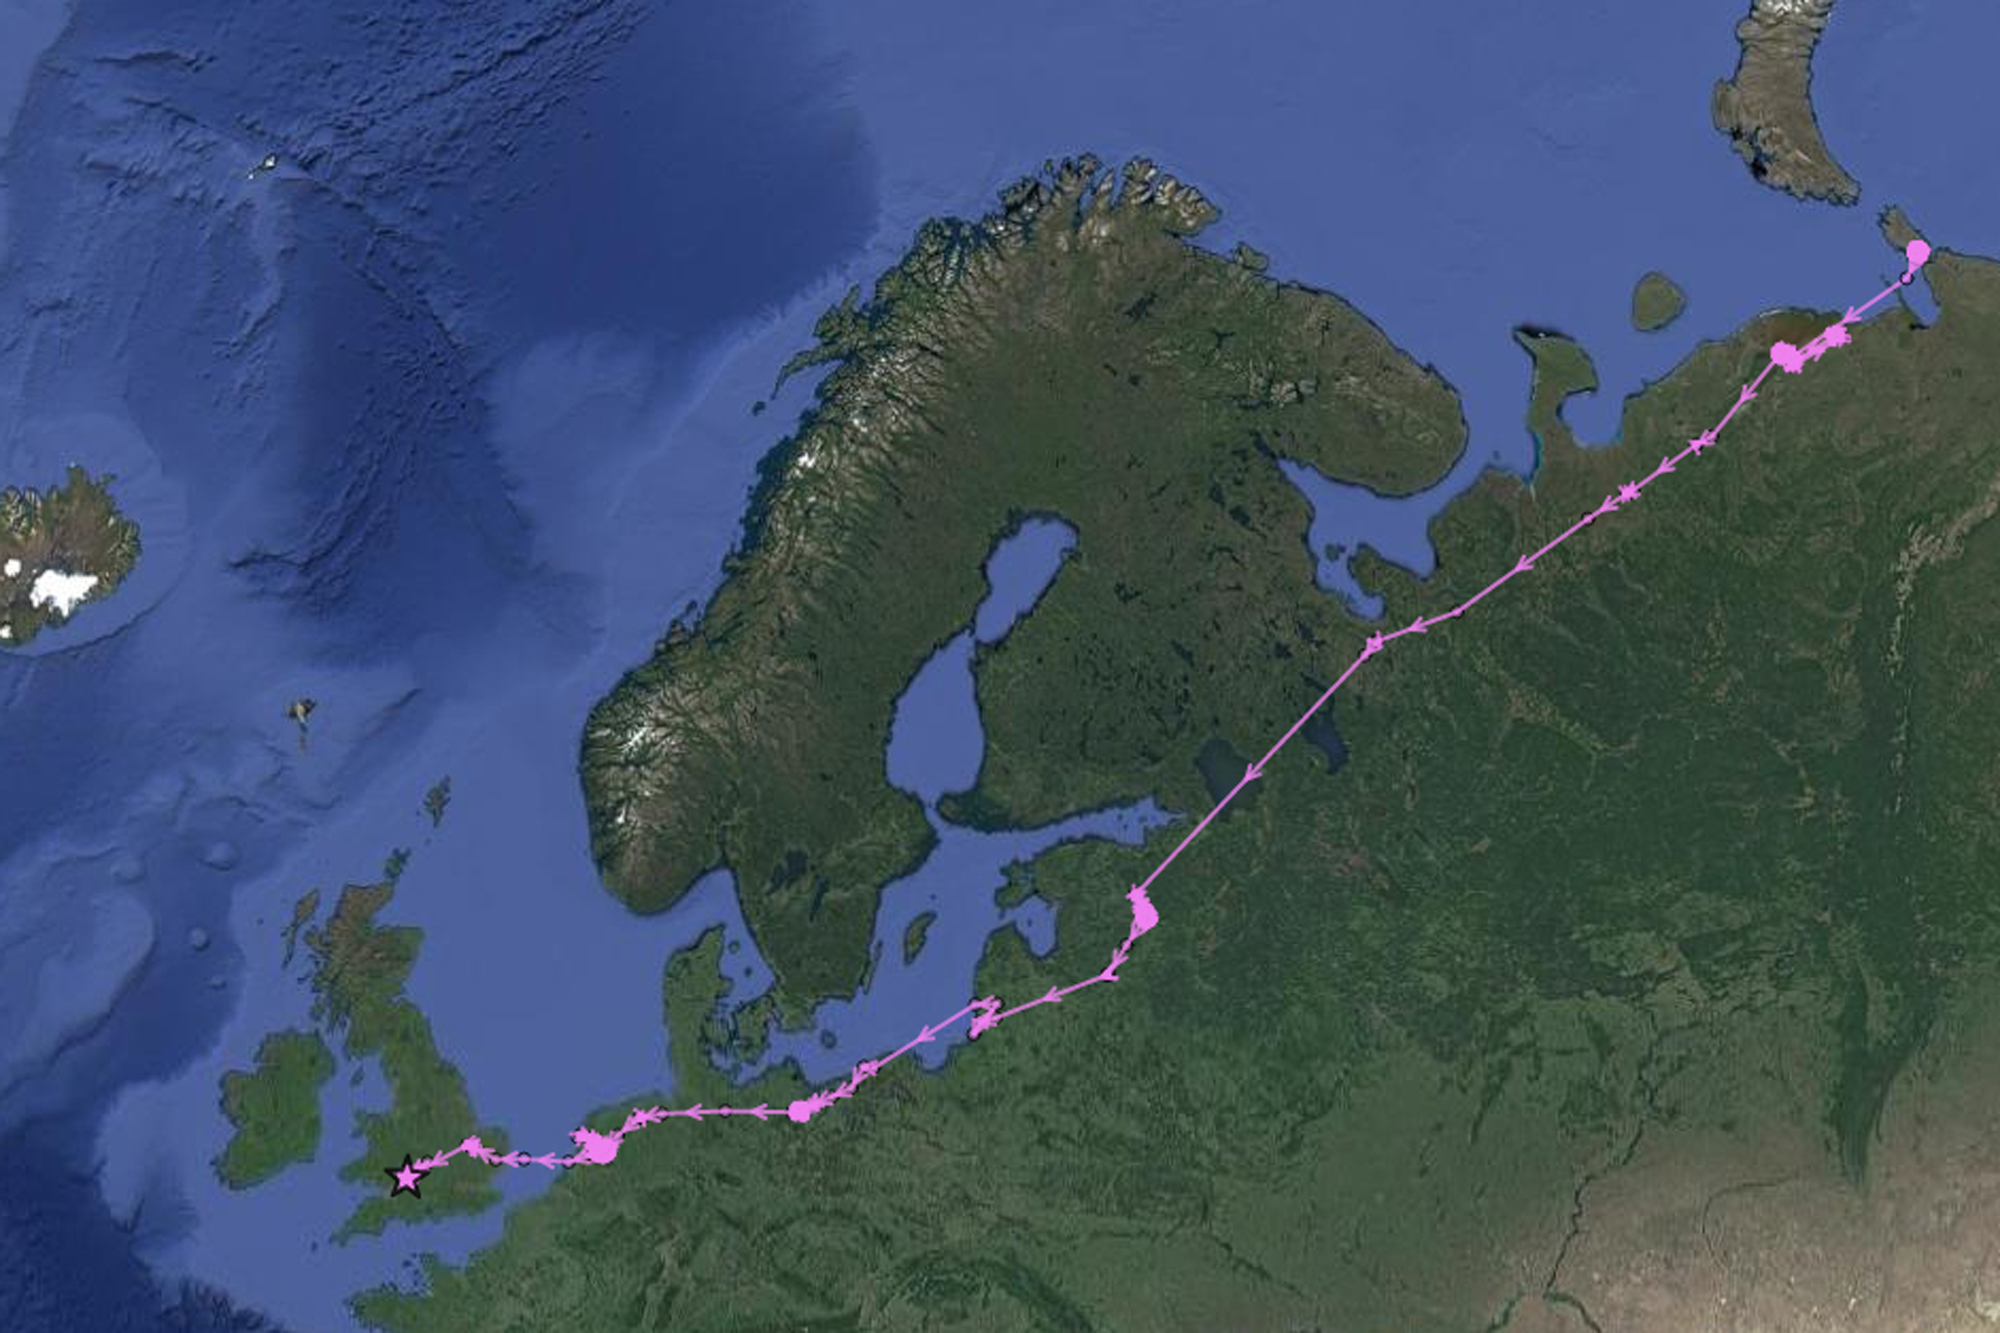 Maisie's migration route